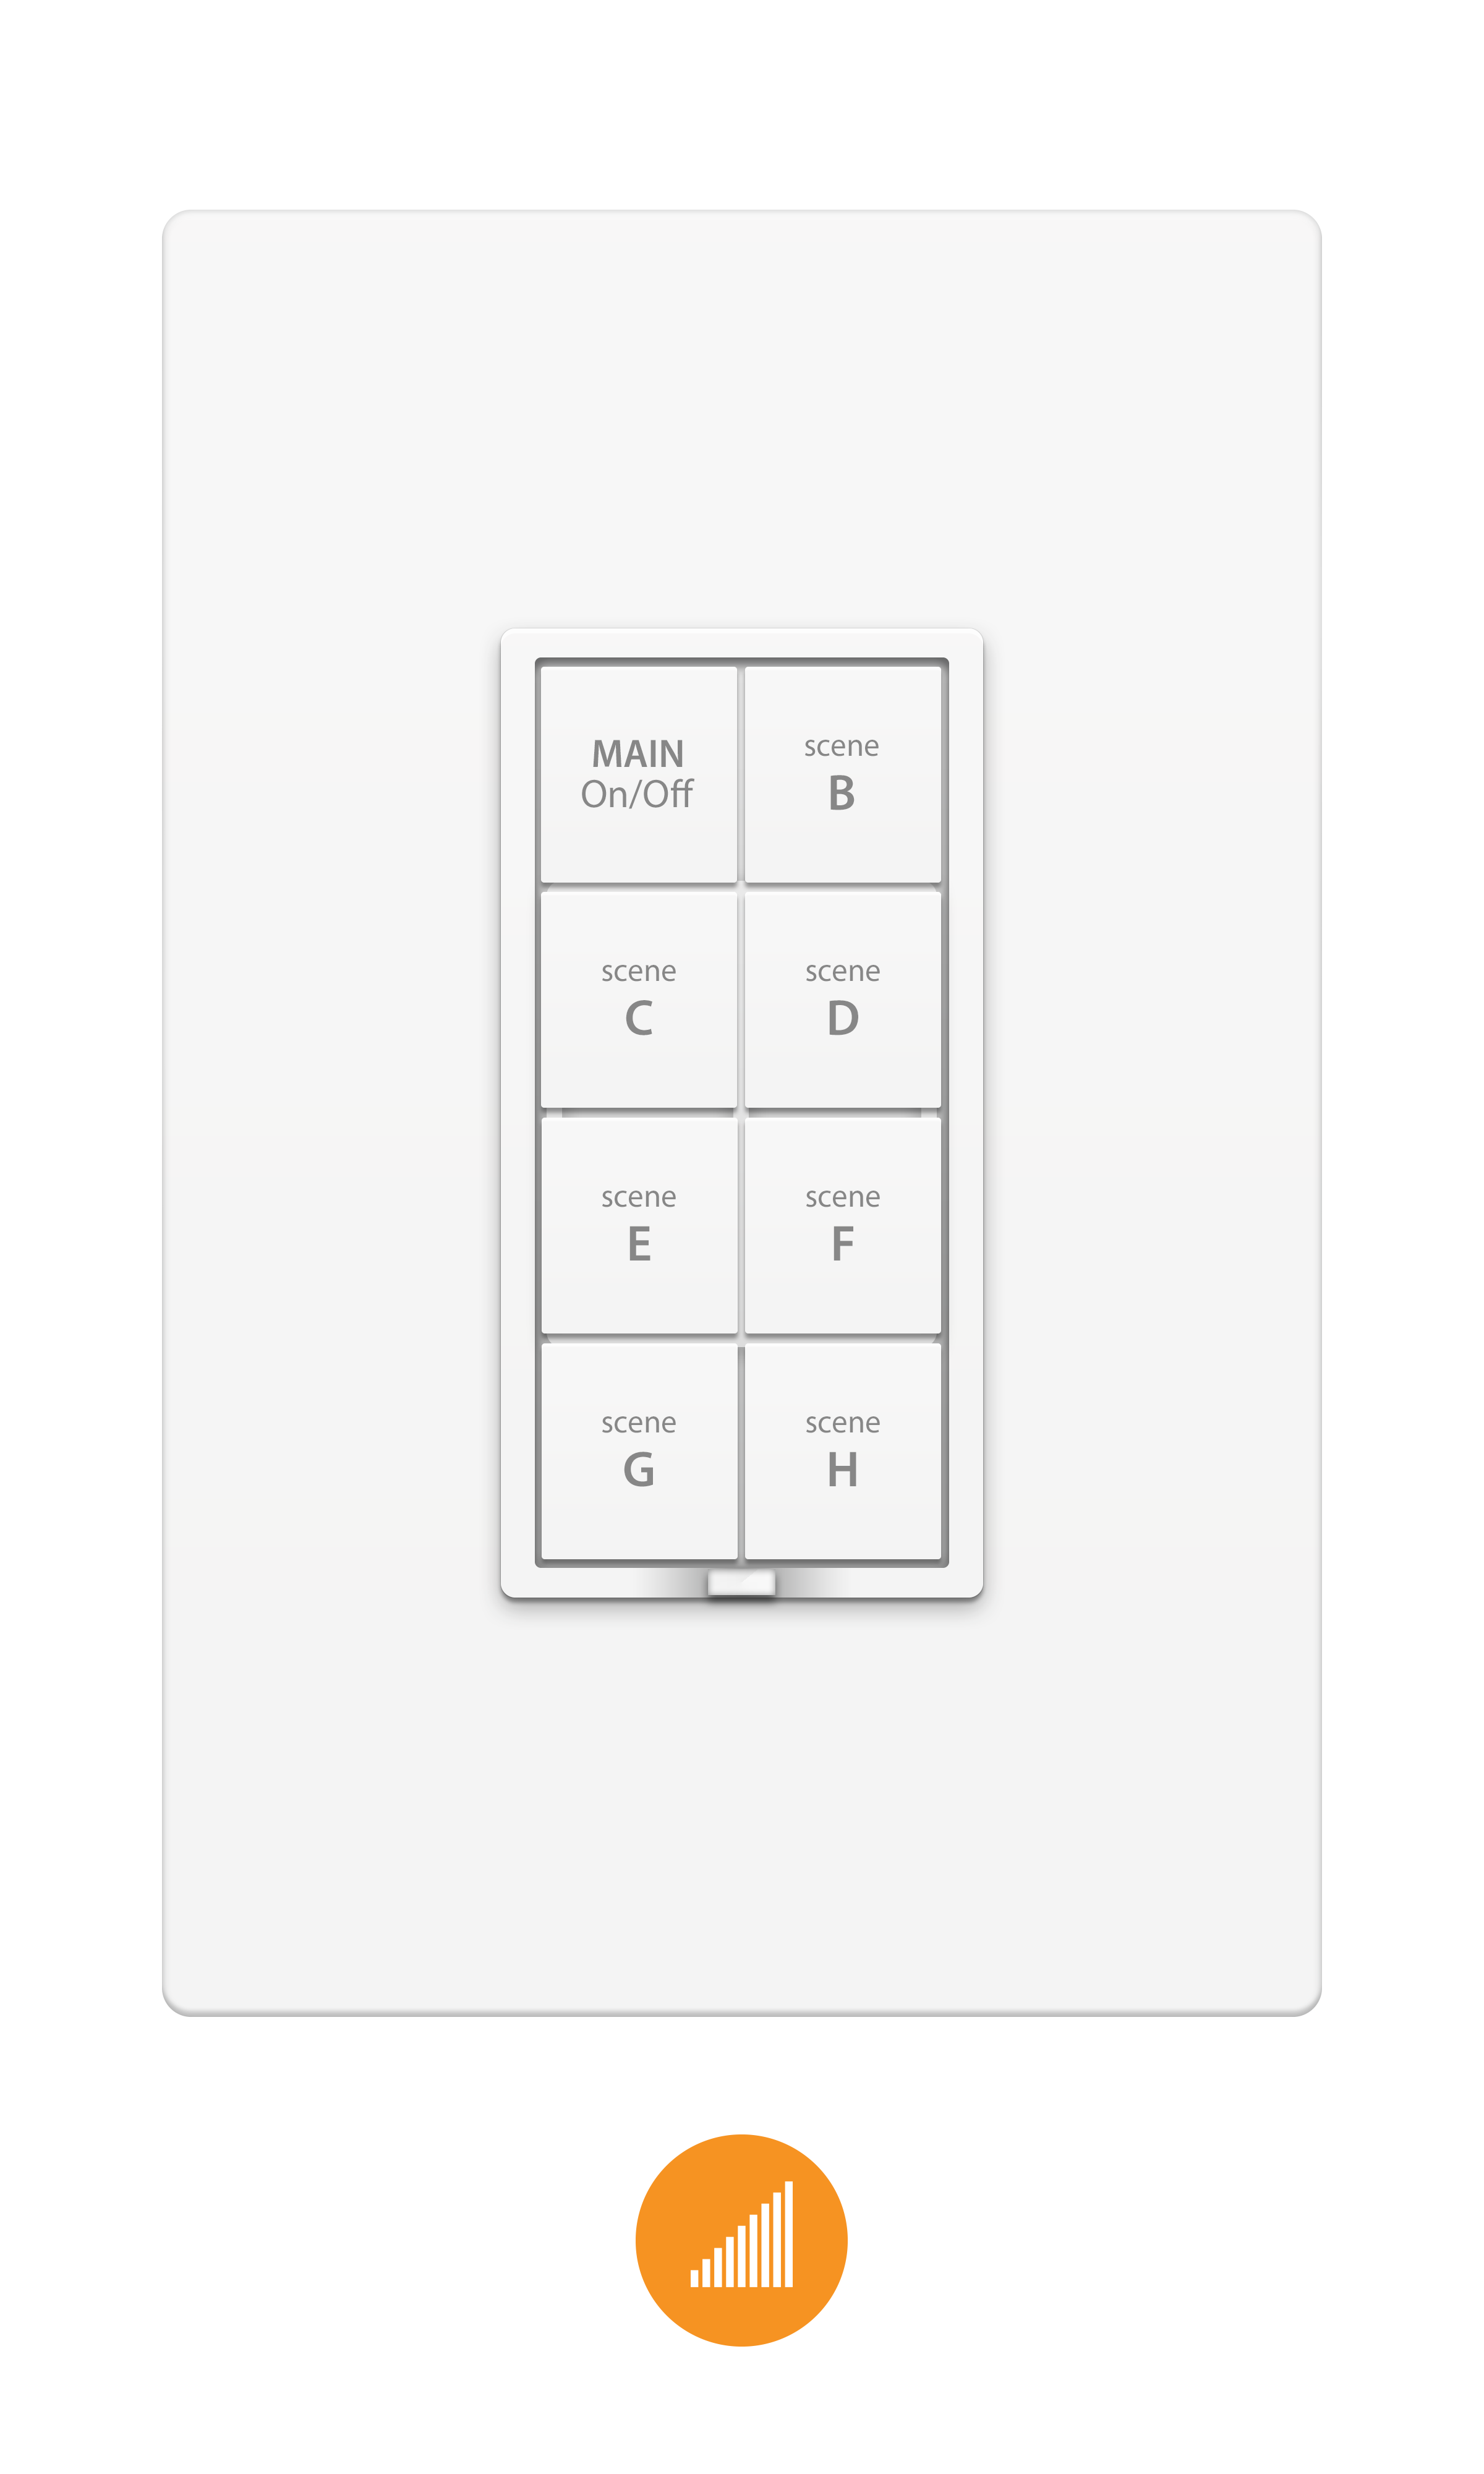 keypad-types-8-button-dimmer.png